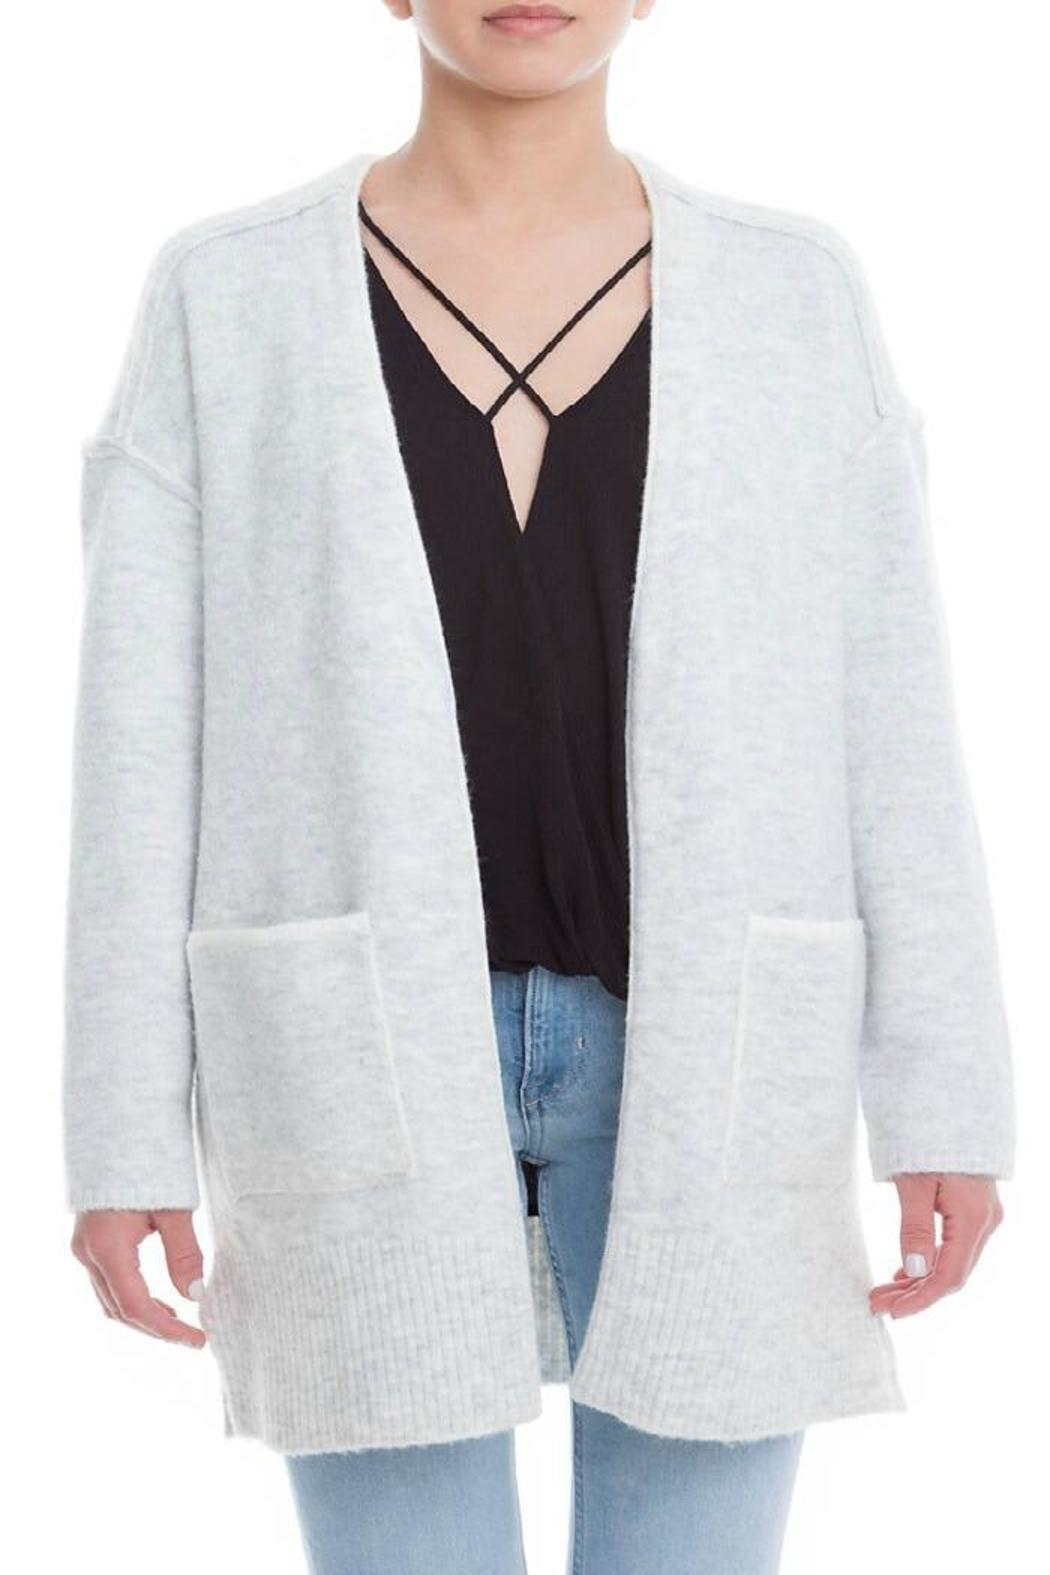 Lush Oversized Cardigan Sweater from West Virginia by Virginia Lee ...